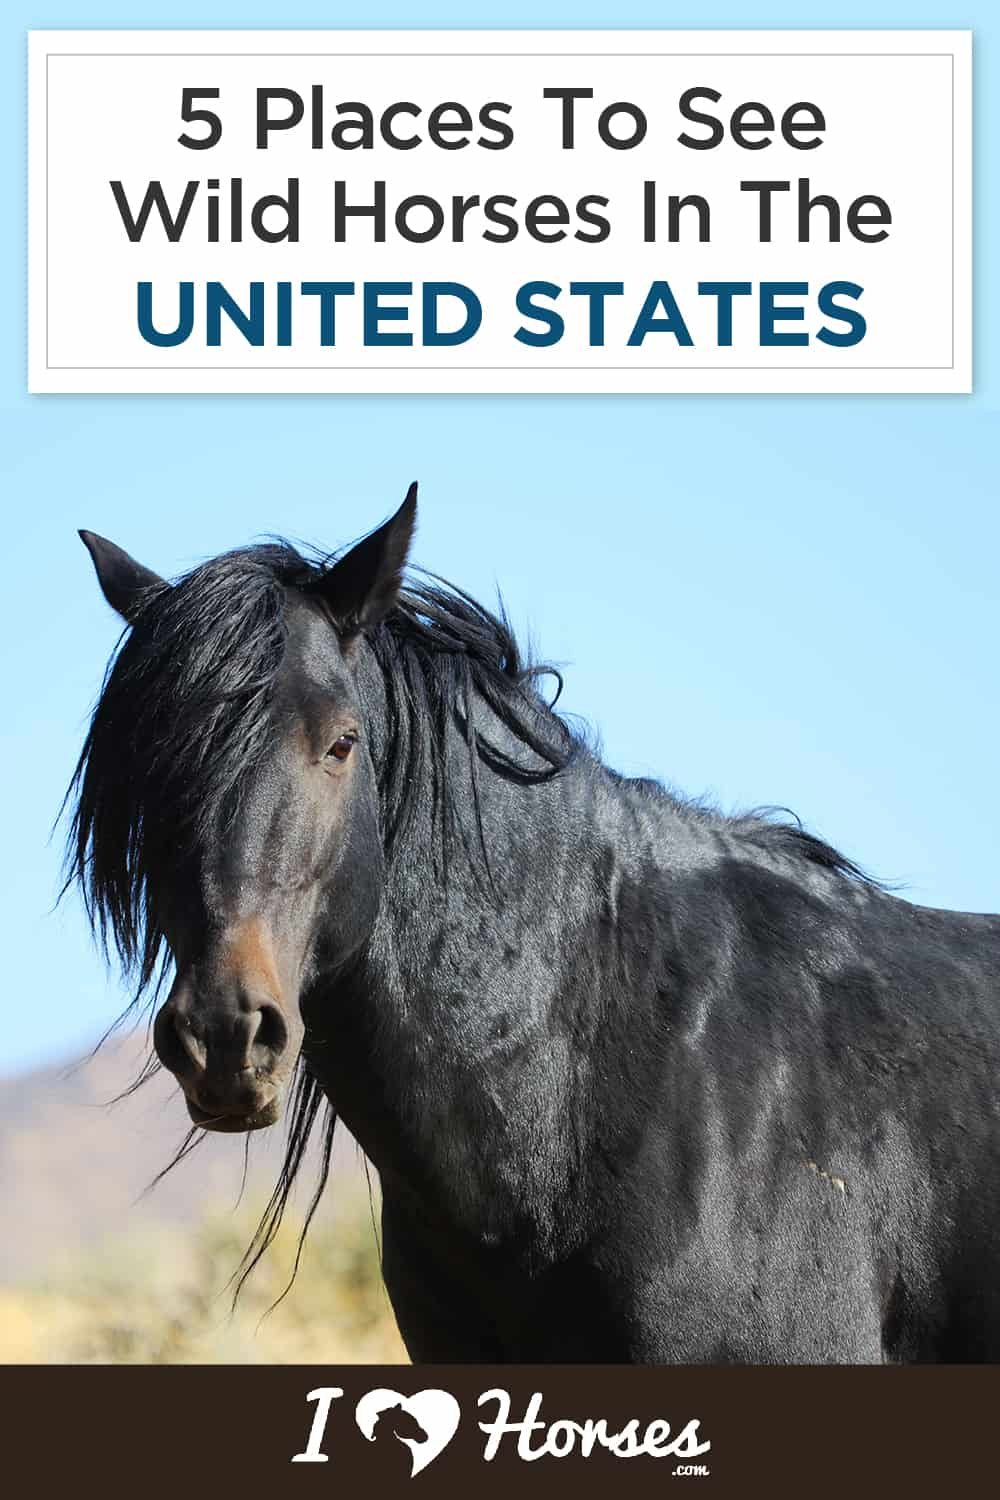 5 Places To See Wild Horses In The United States